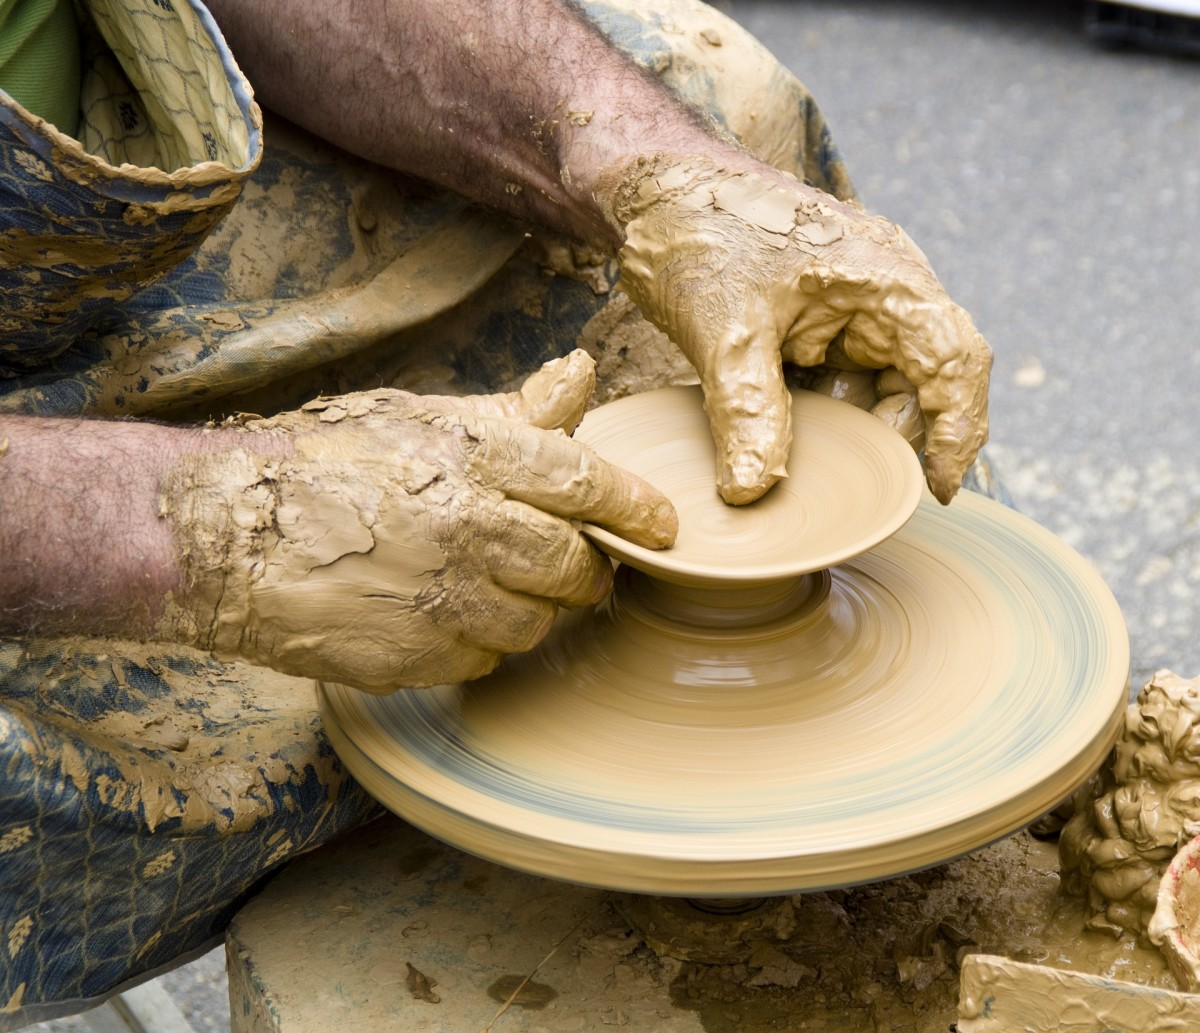 A pair of hands sculpting clay for pottery.